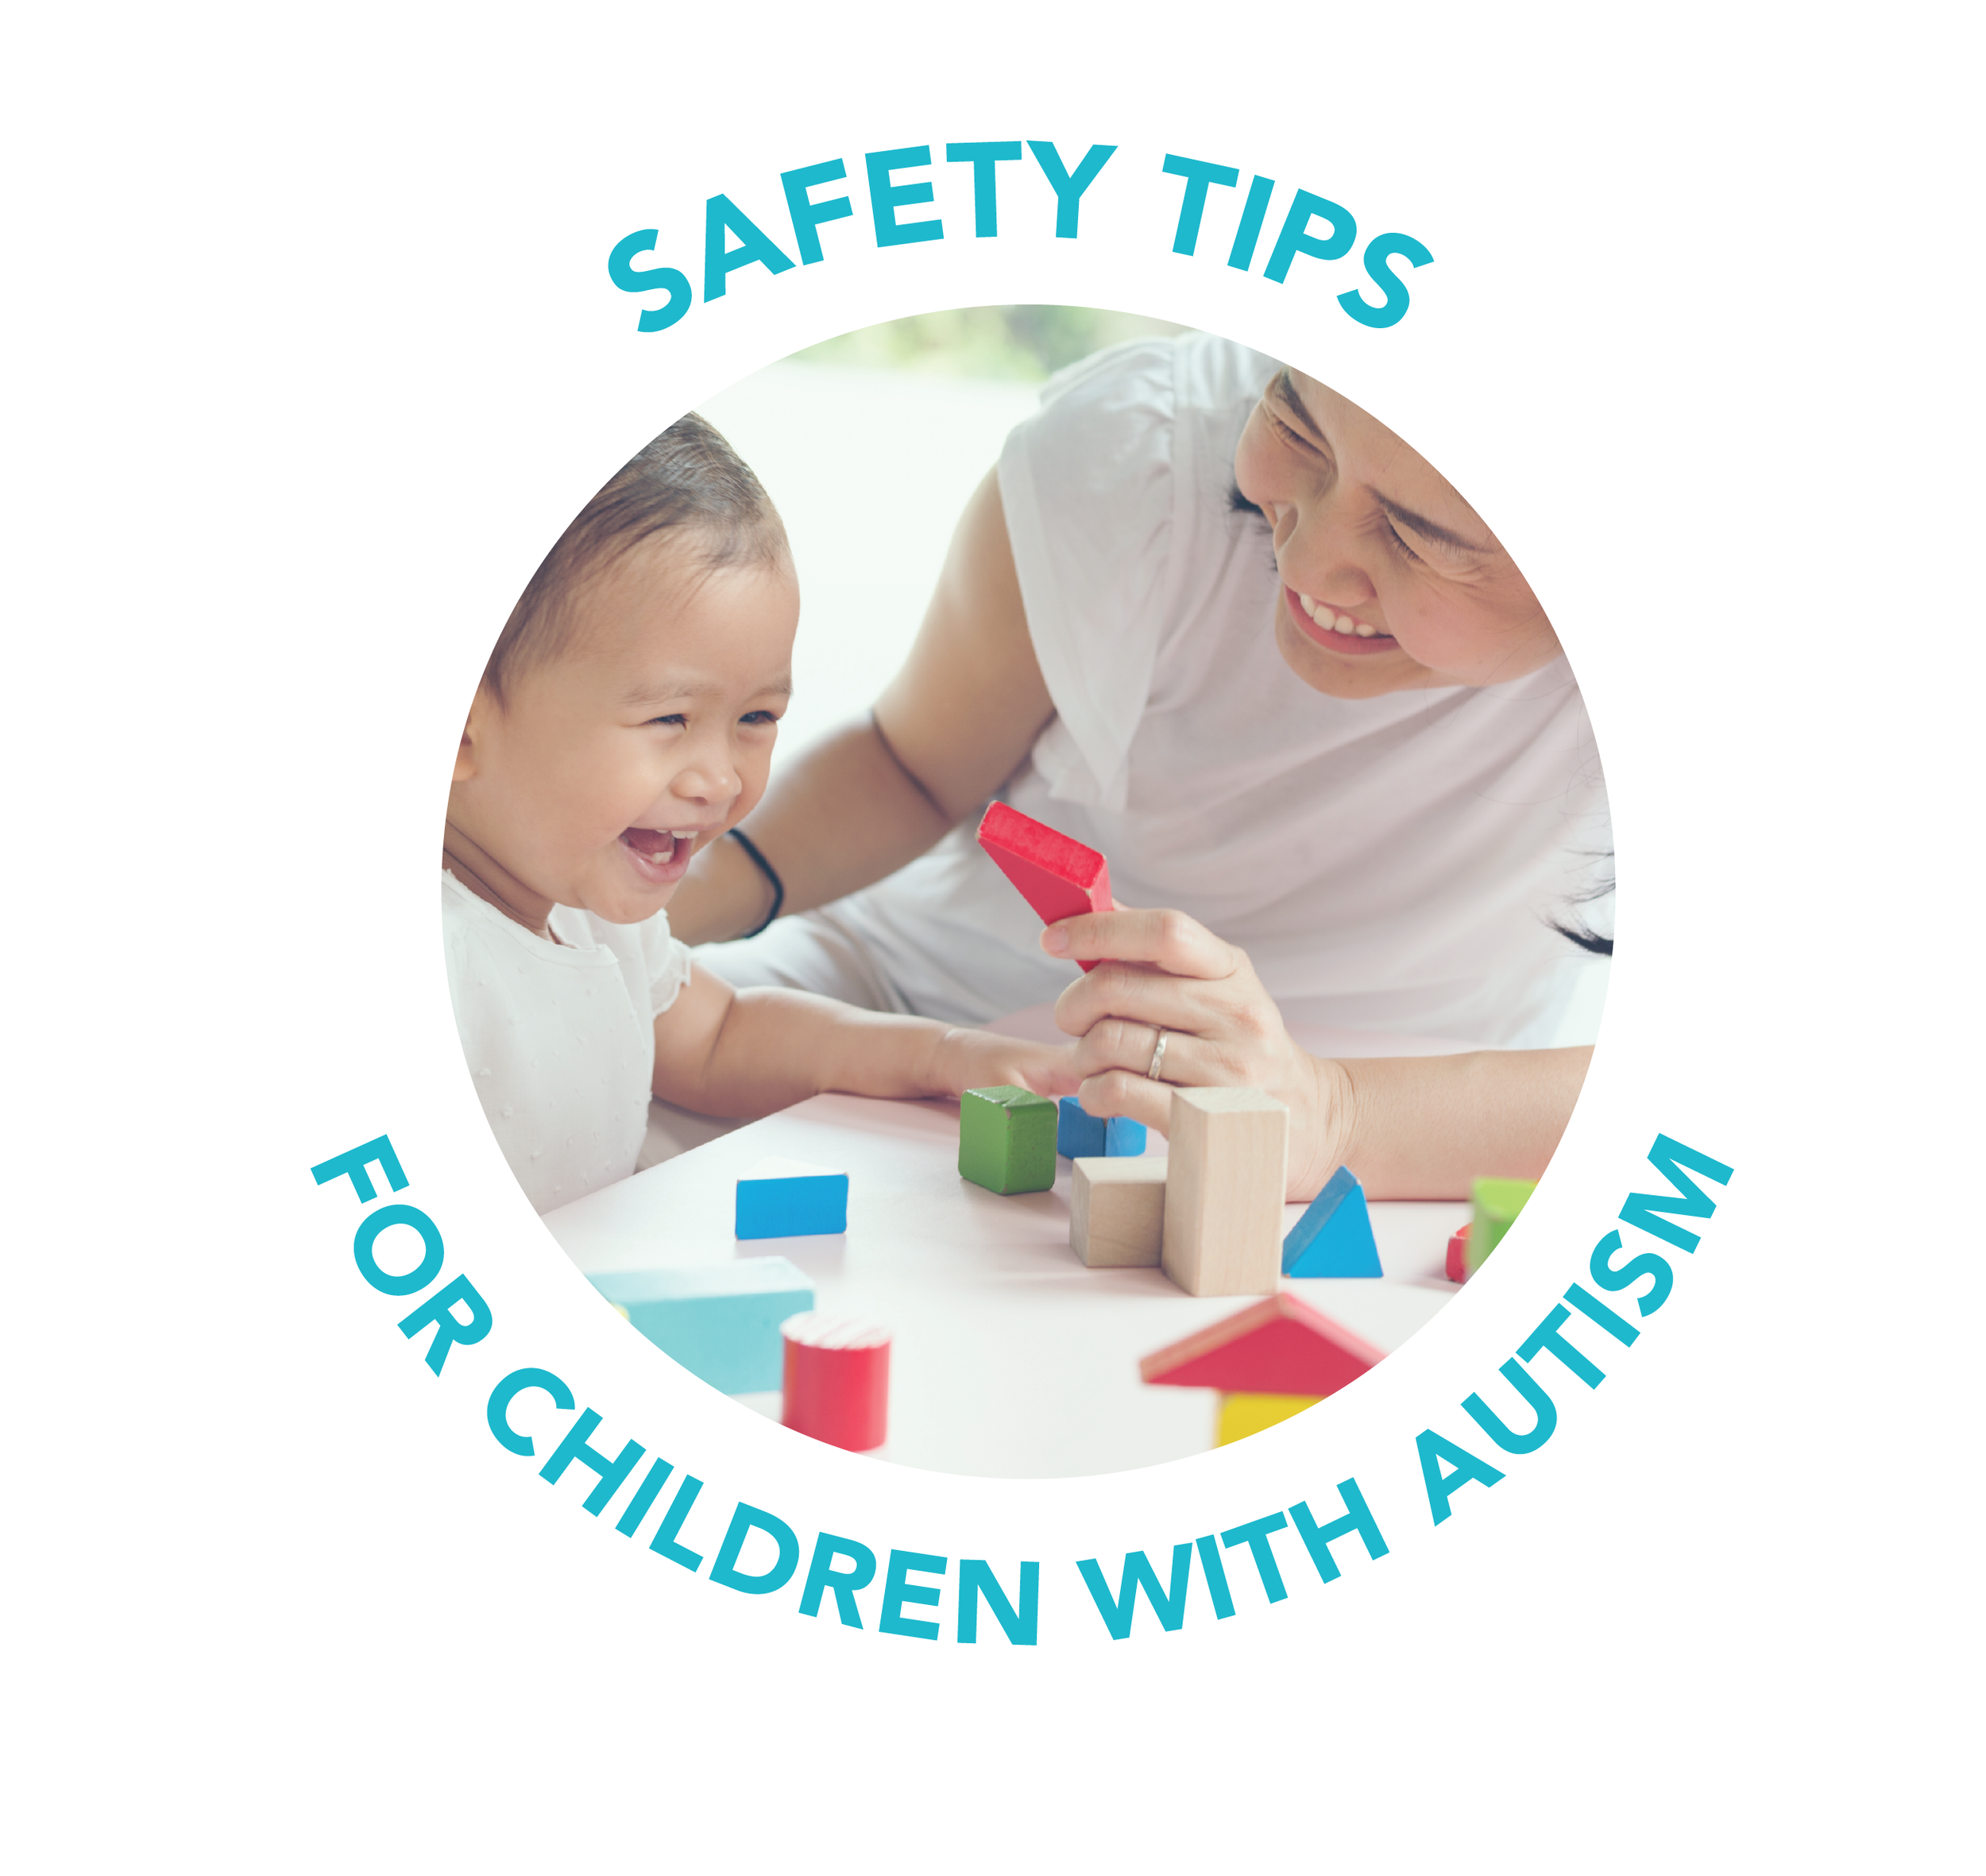 Autism Safety Tips - The Most Important Things You Should Know